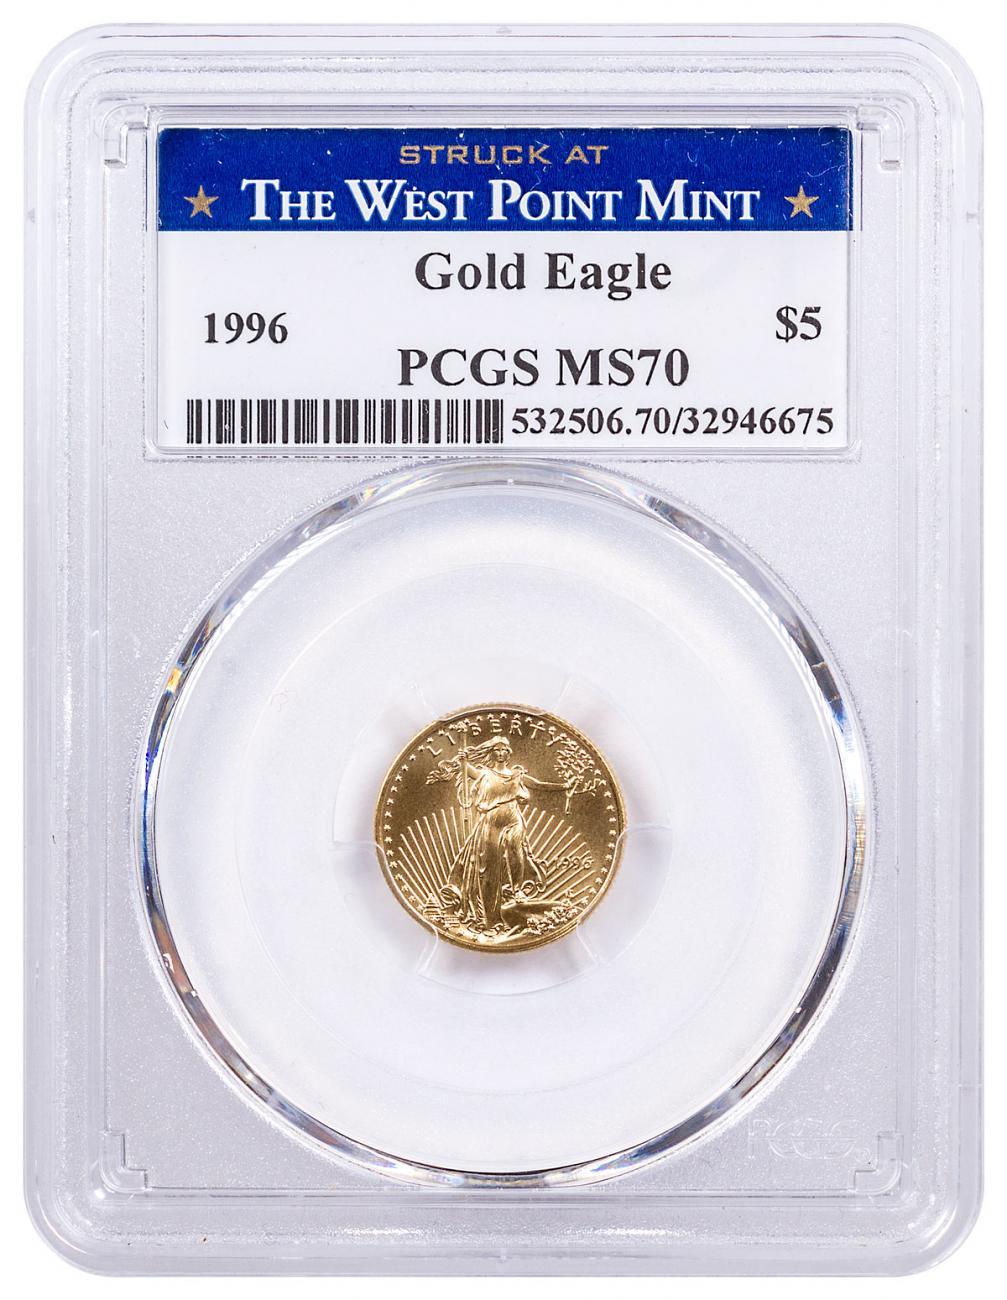 1996 1/10 oz Gold American Eagle $5 PCGS MS70 Struck at the West Point Mint Label